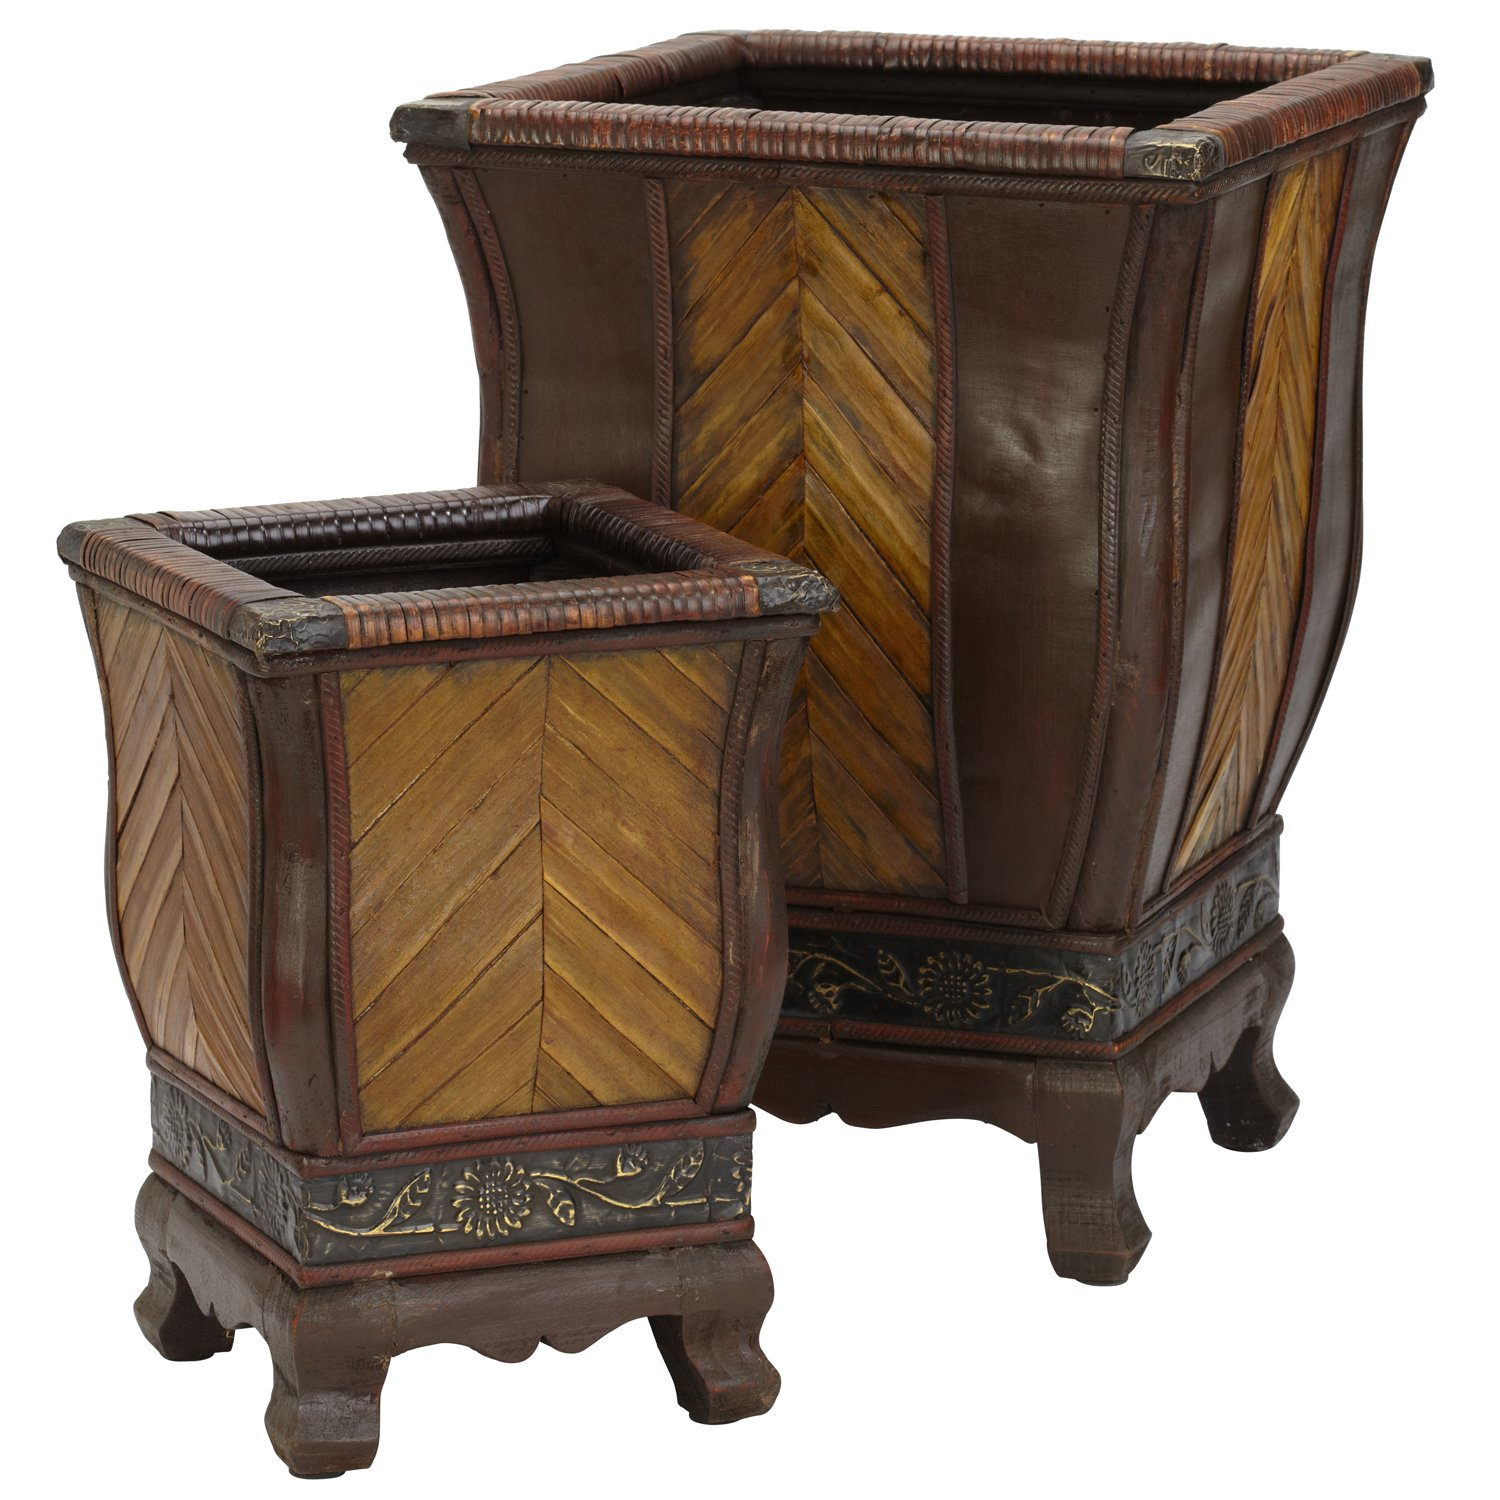 Nearly Natural 521 Decorative Wood Planters, Brown, Set of 2